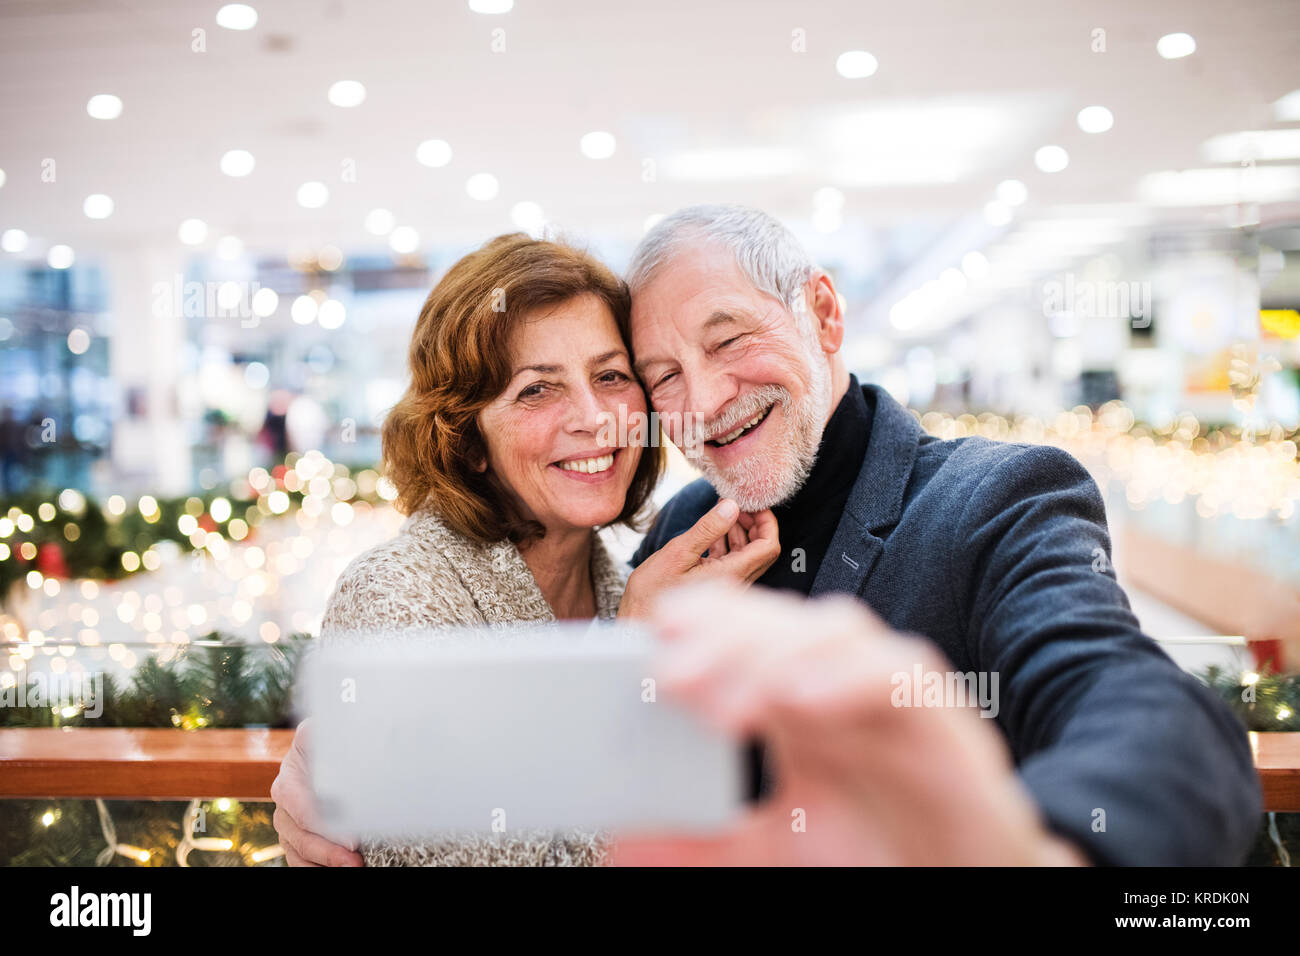 Senior couple with smartphone doing Christmas shopping. - Stock Image